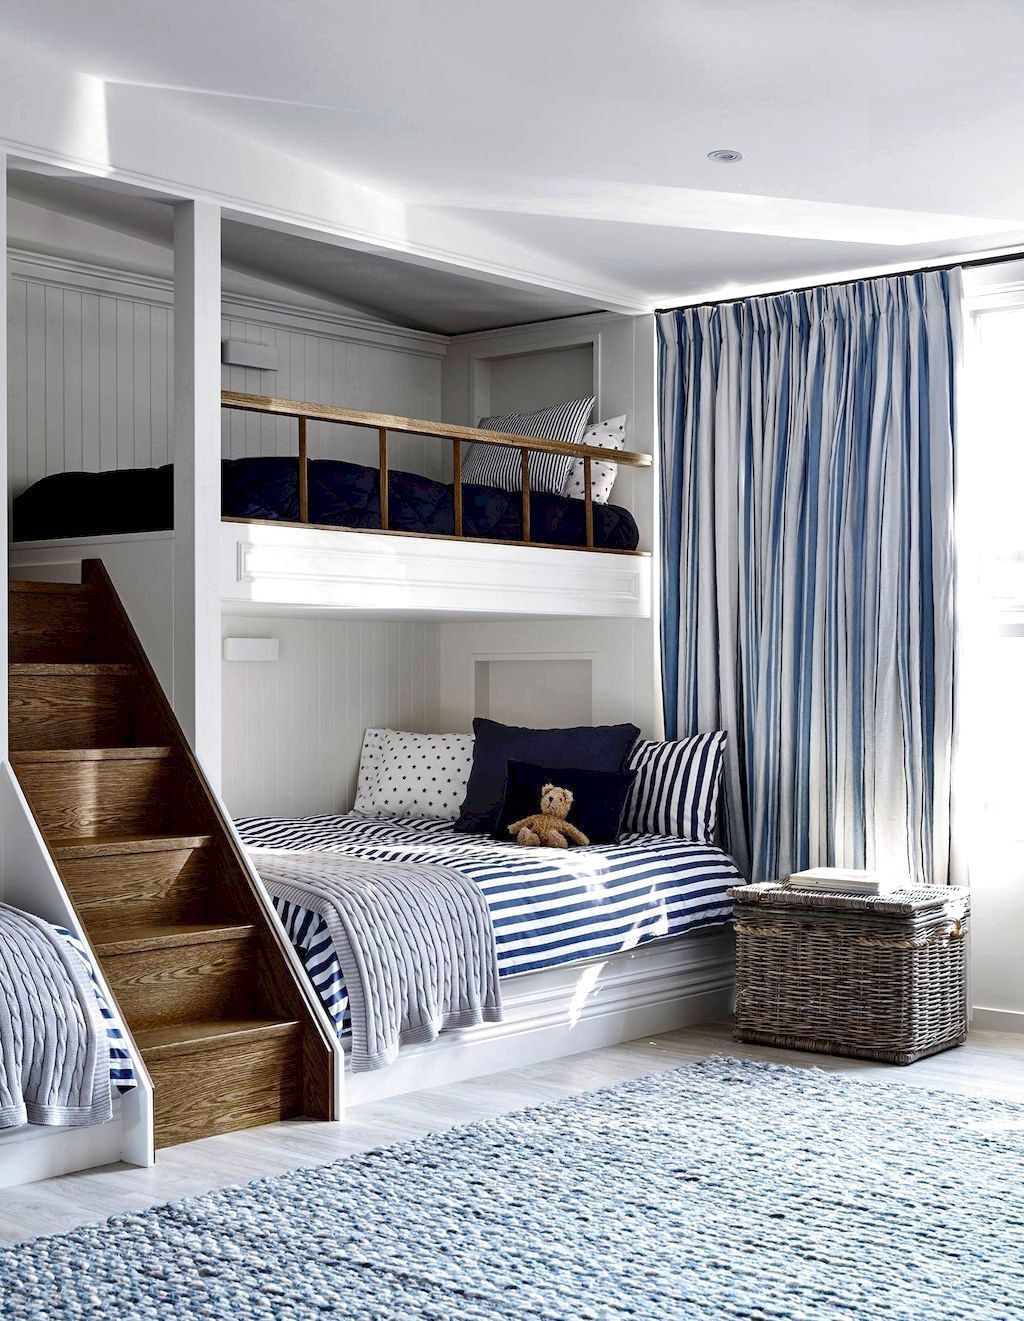 63 Favourite Living Room Decorating Ideas Home Decor Bedroom Bunk Bed Designs Bunk Bed Rooms